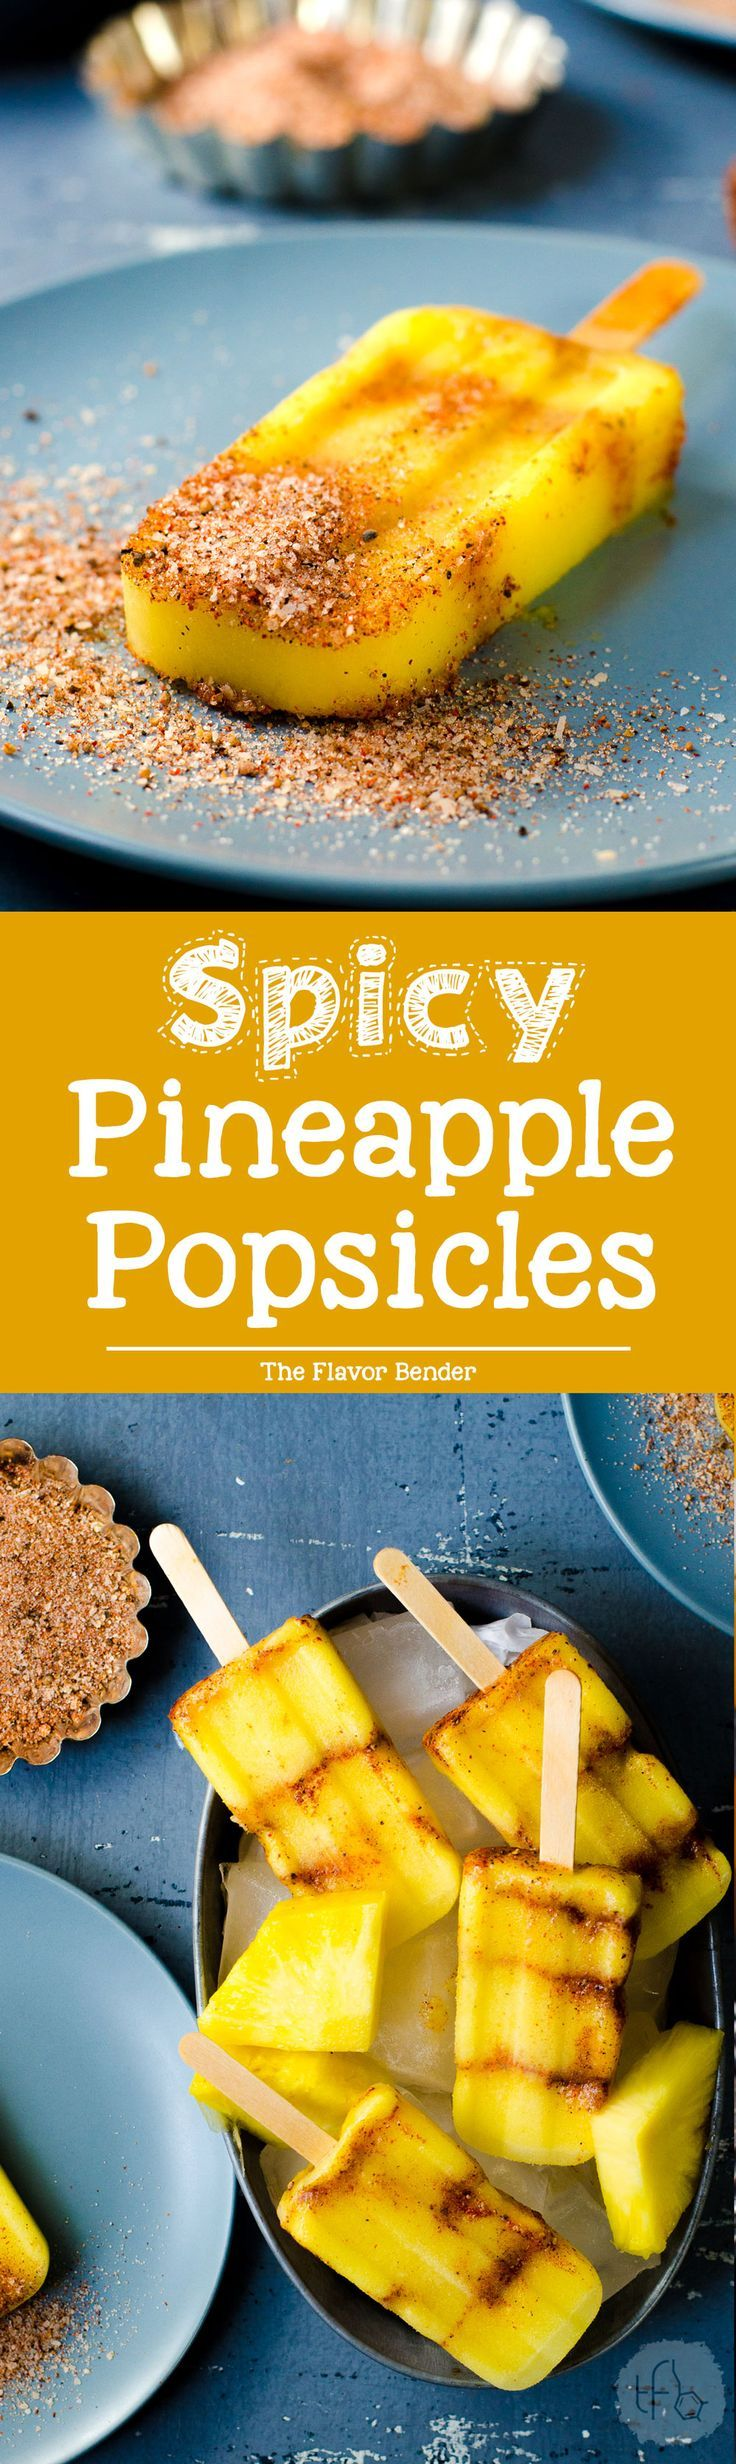 35086 best Awesome Recipes images on Pinterest | Delicious ... - photo#40